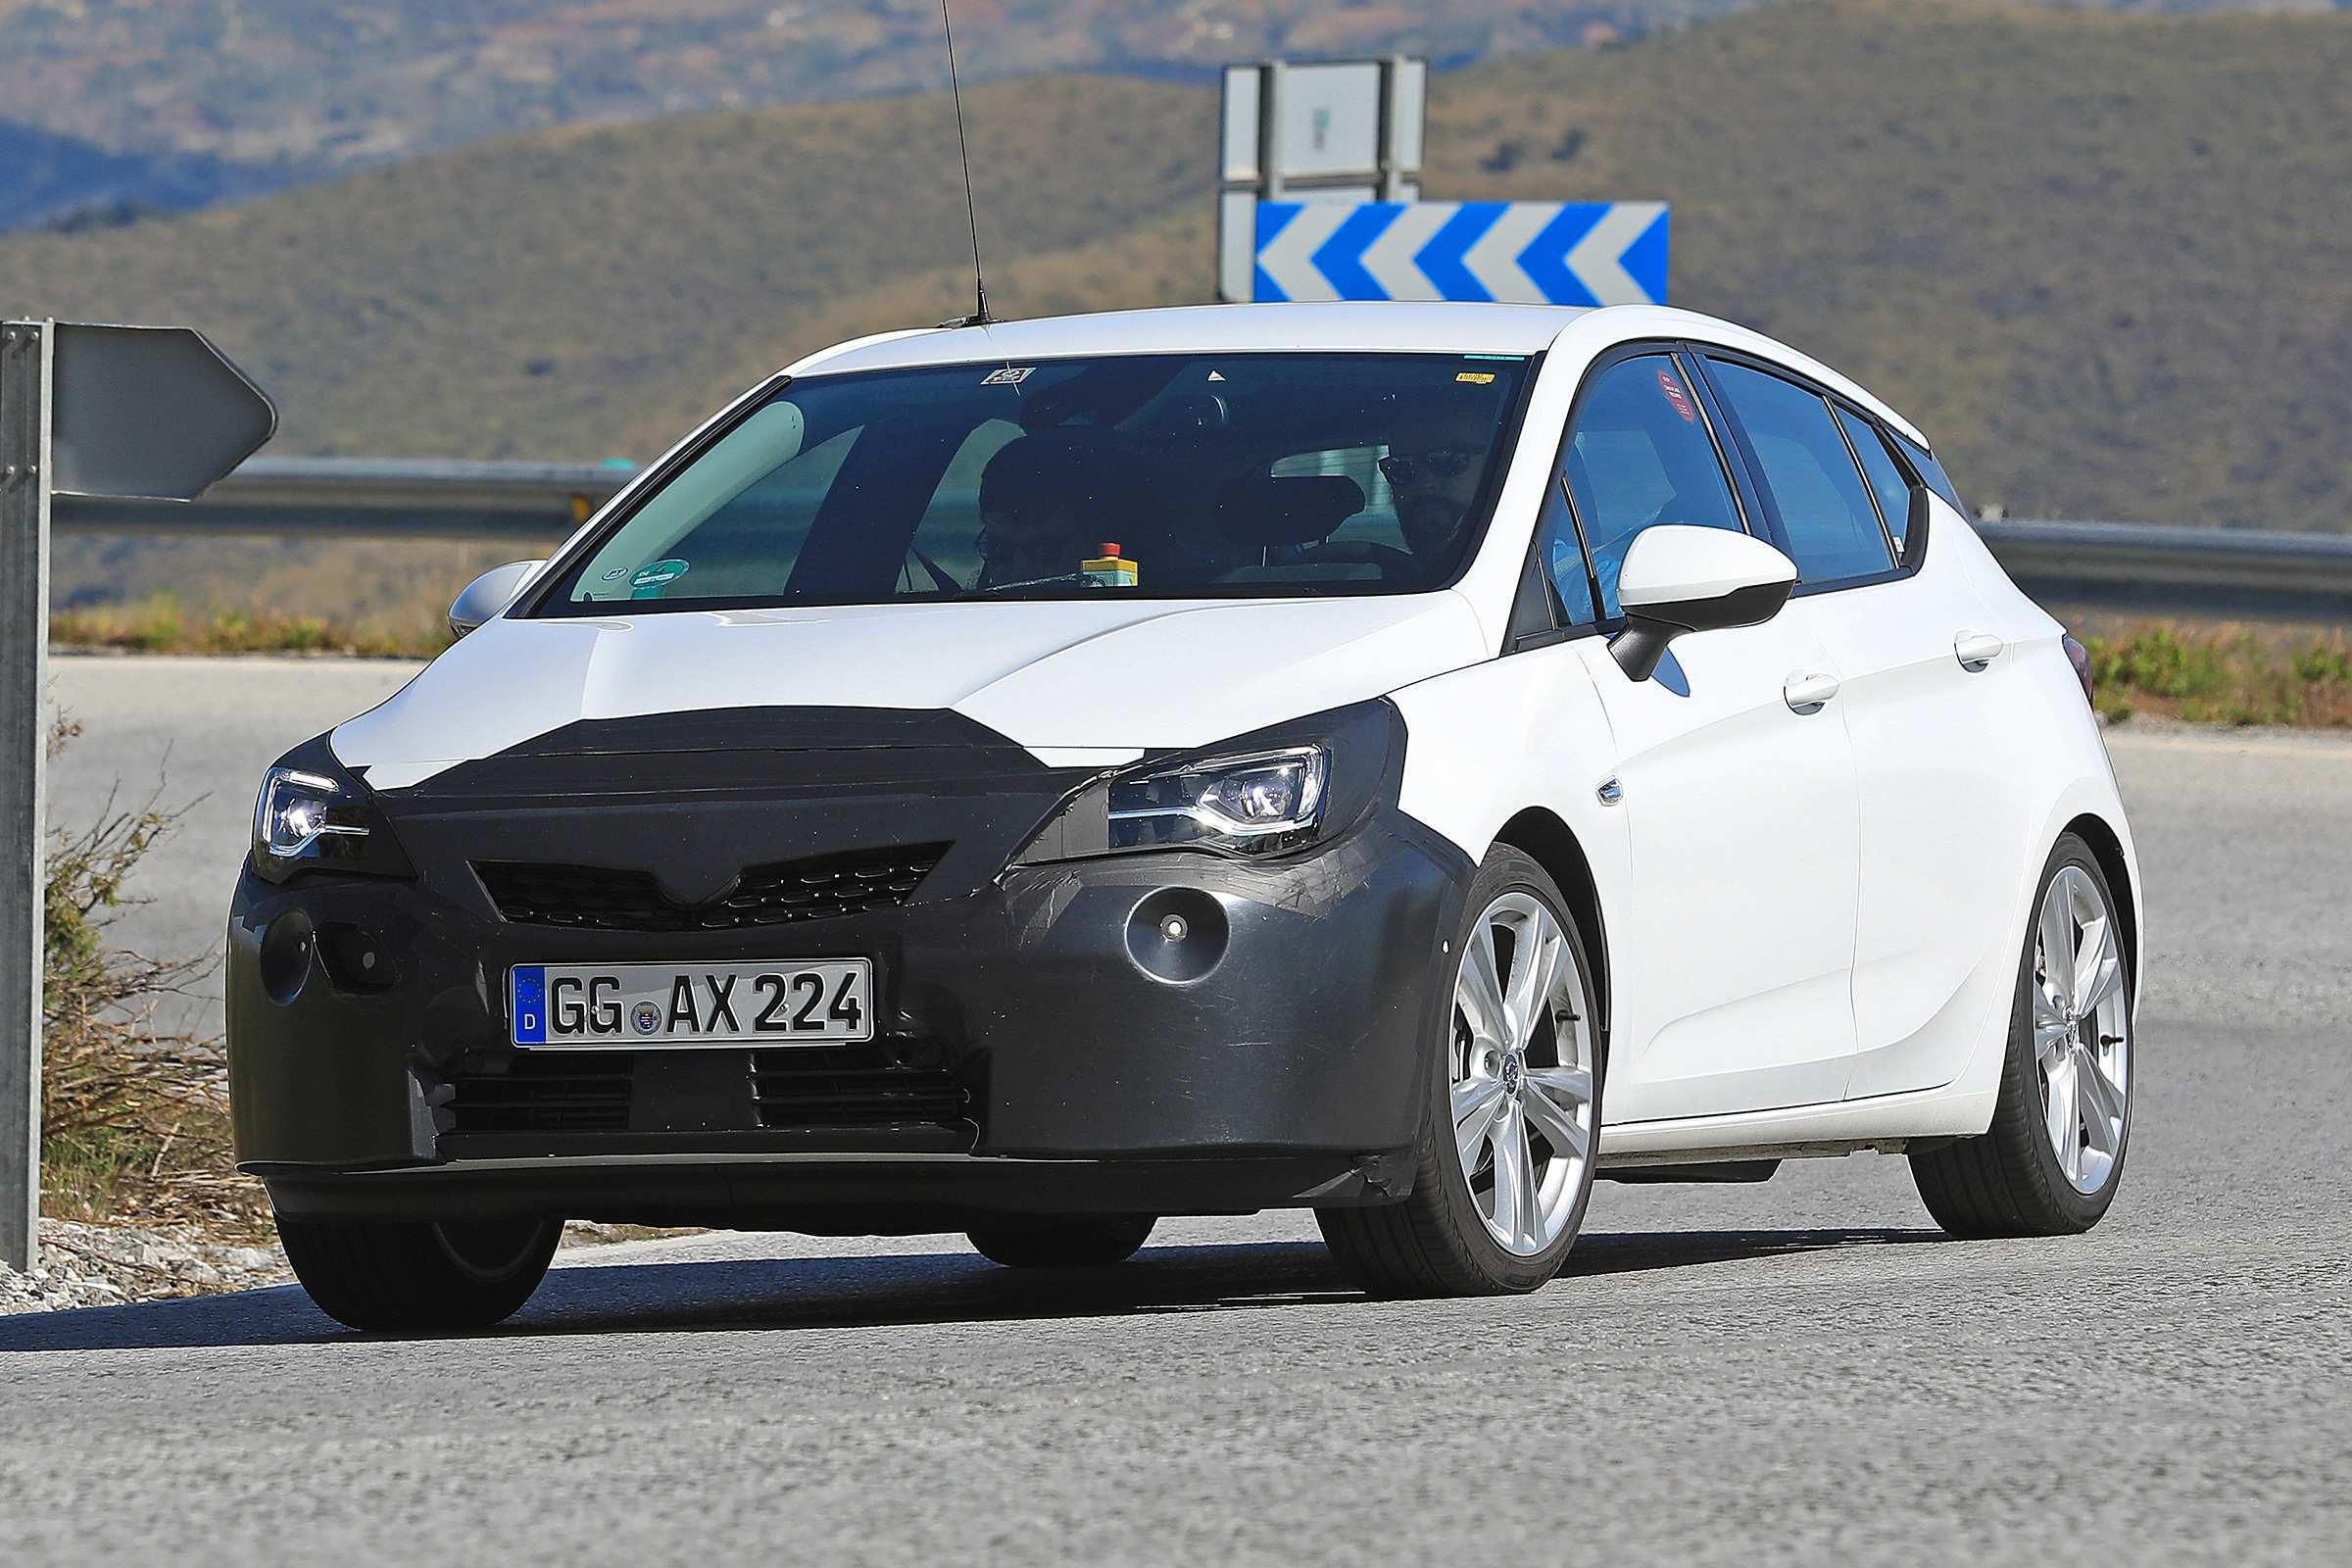 79 Great Opel Astra 2020 Wallpaper by Opel Astra 2020